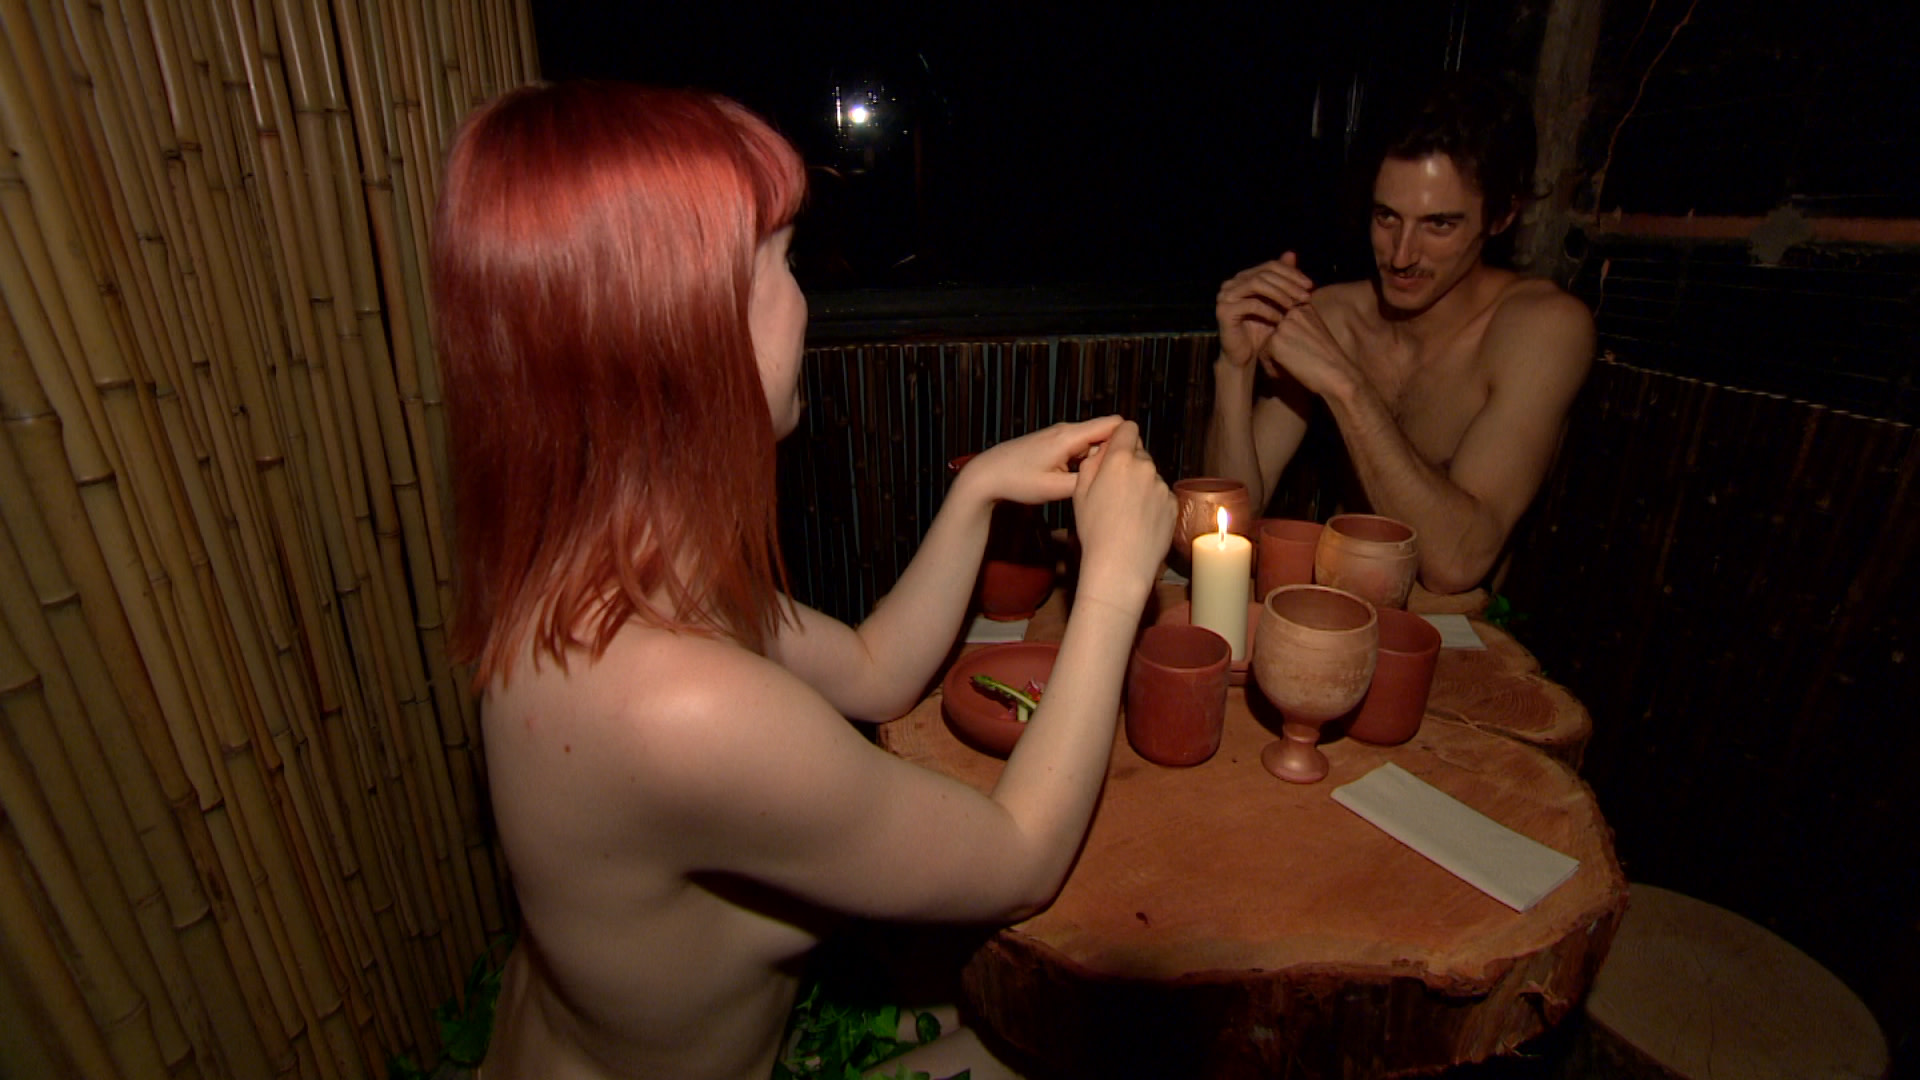 scandinavian restaurants Nude